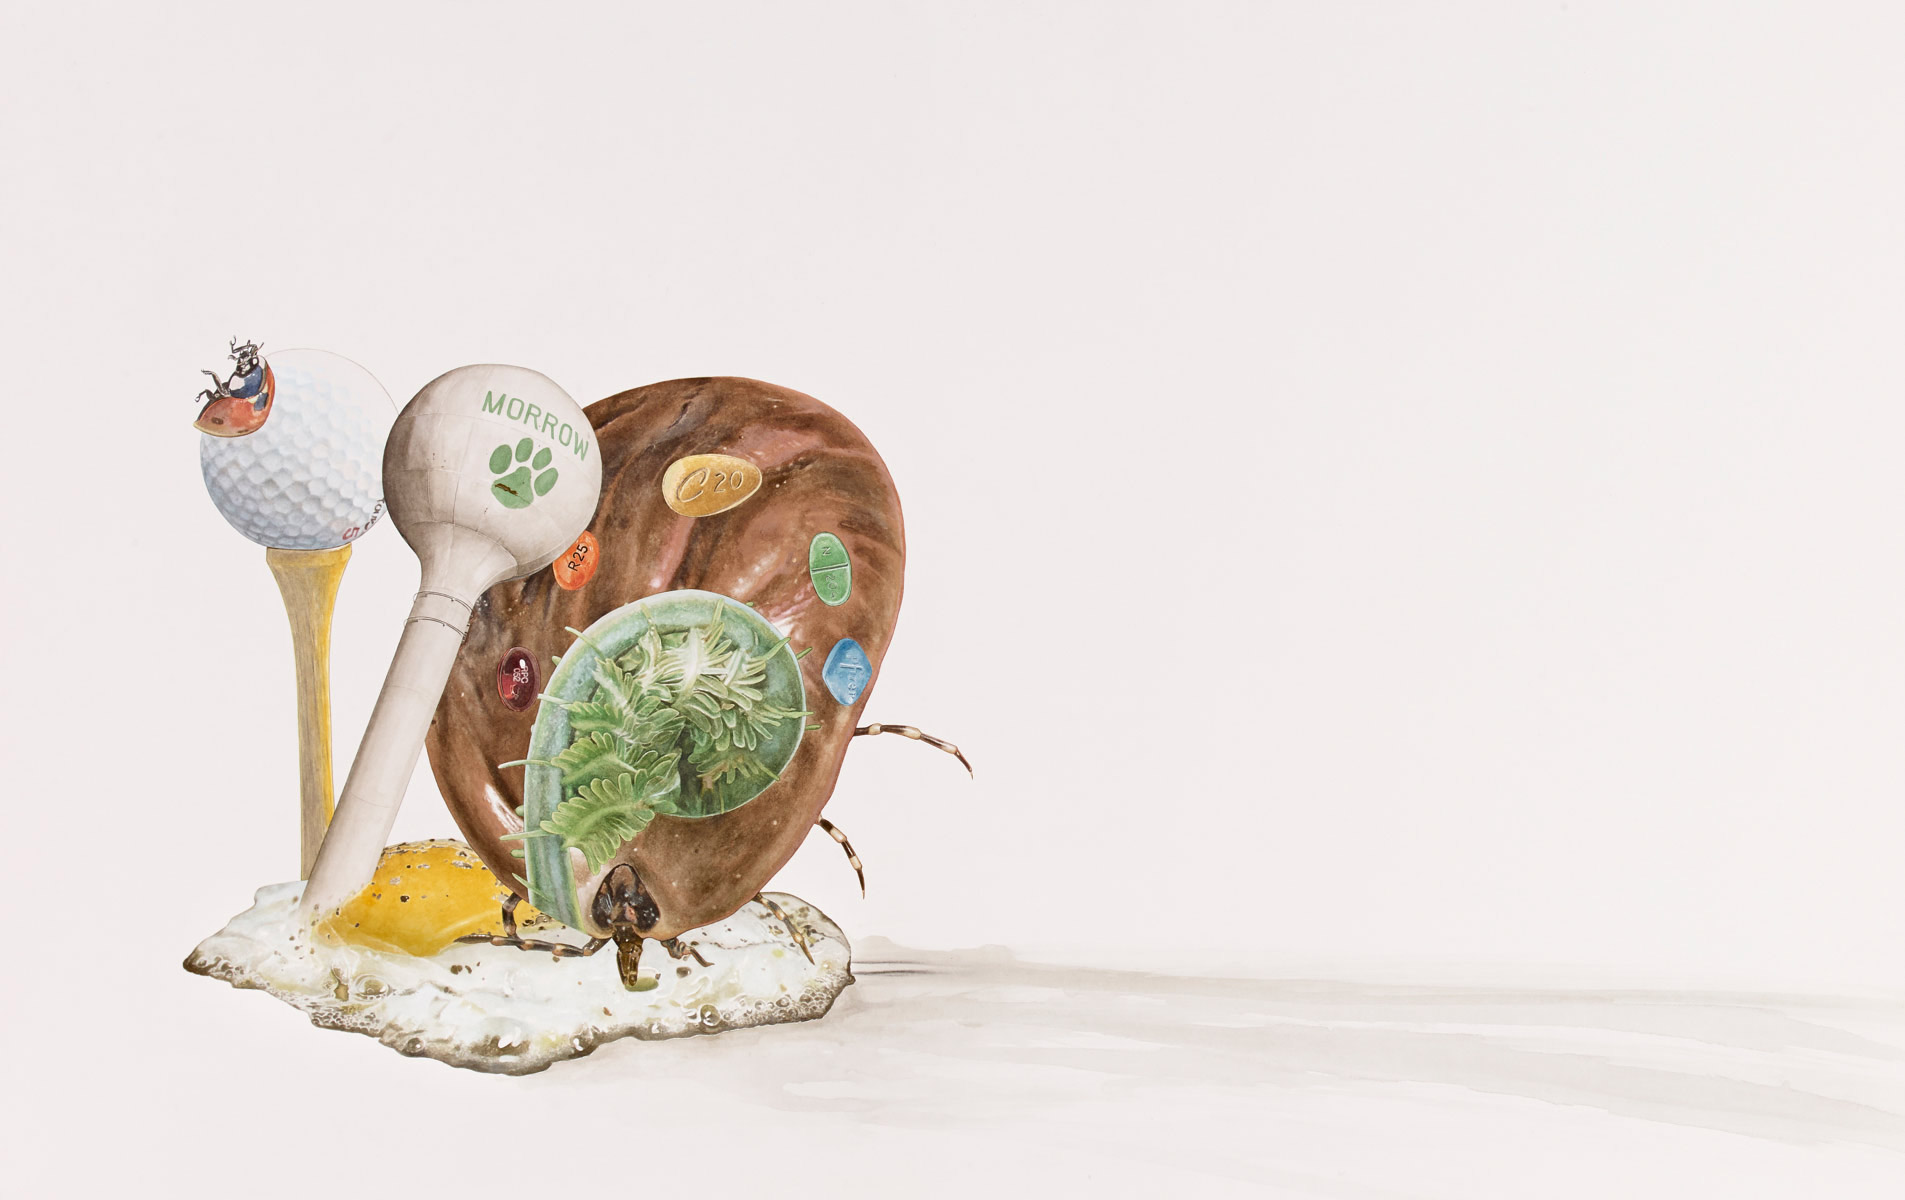 Snail (Gary), 2013, 43 1/4 x 68 1/2 inches, Watercolor on hot press paper